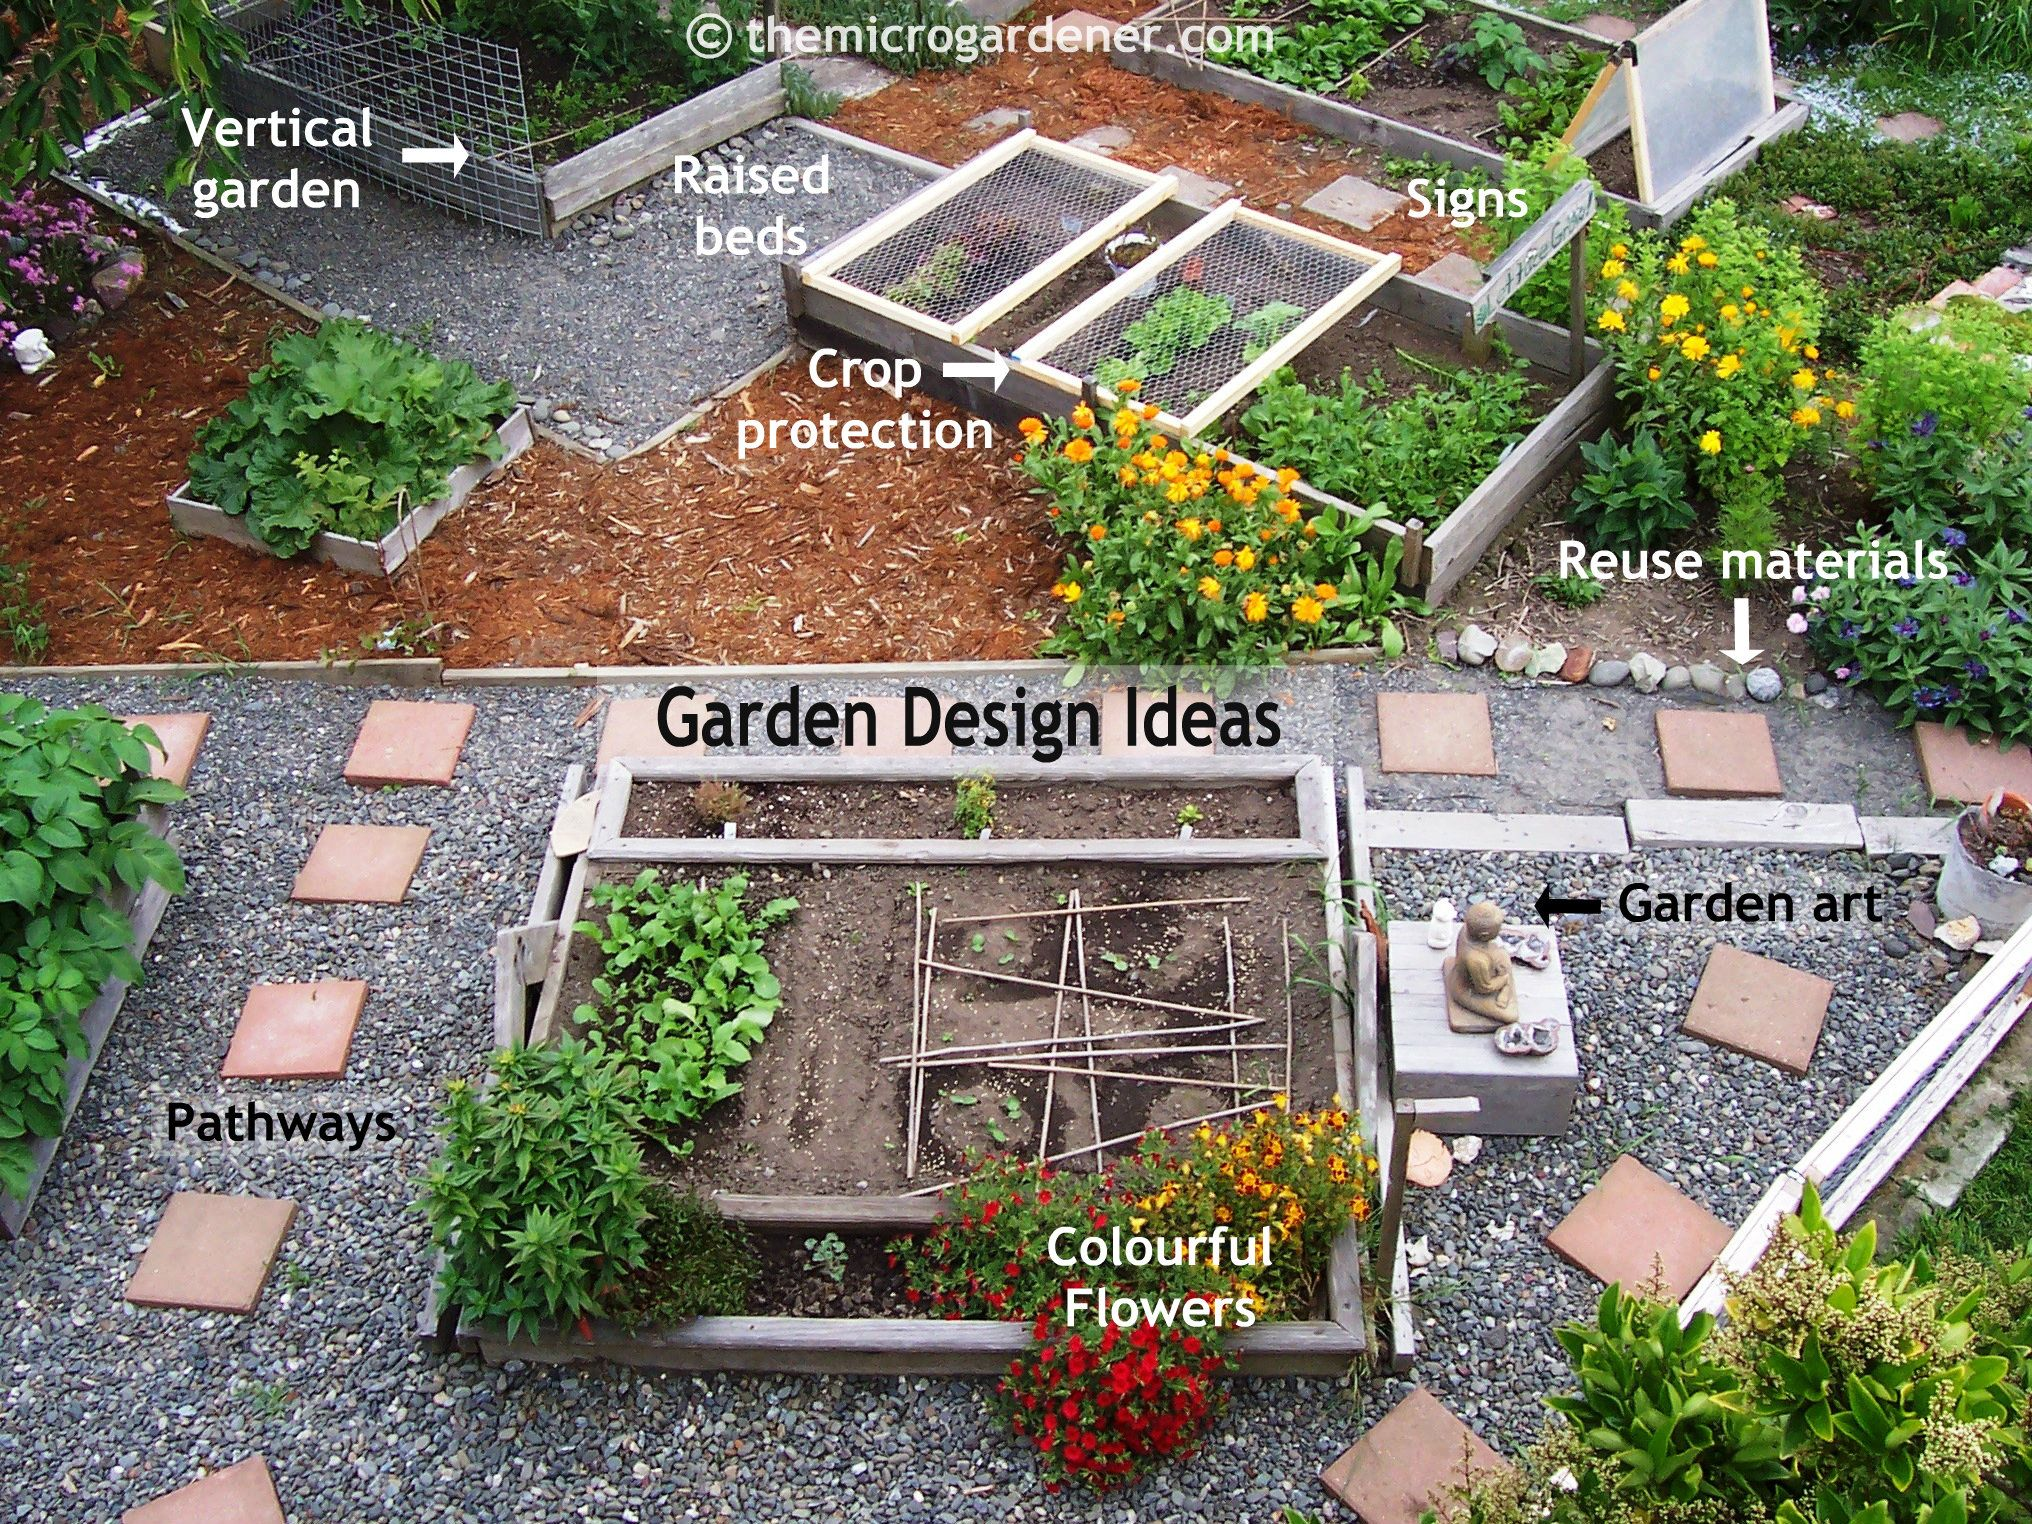 Garden Design Ideas you dont need much time and money to turn your patio into the most relaxing place all you need is a plan and some inspiration Find This Pin And More On Small Garden Design Ideas